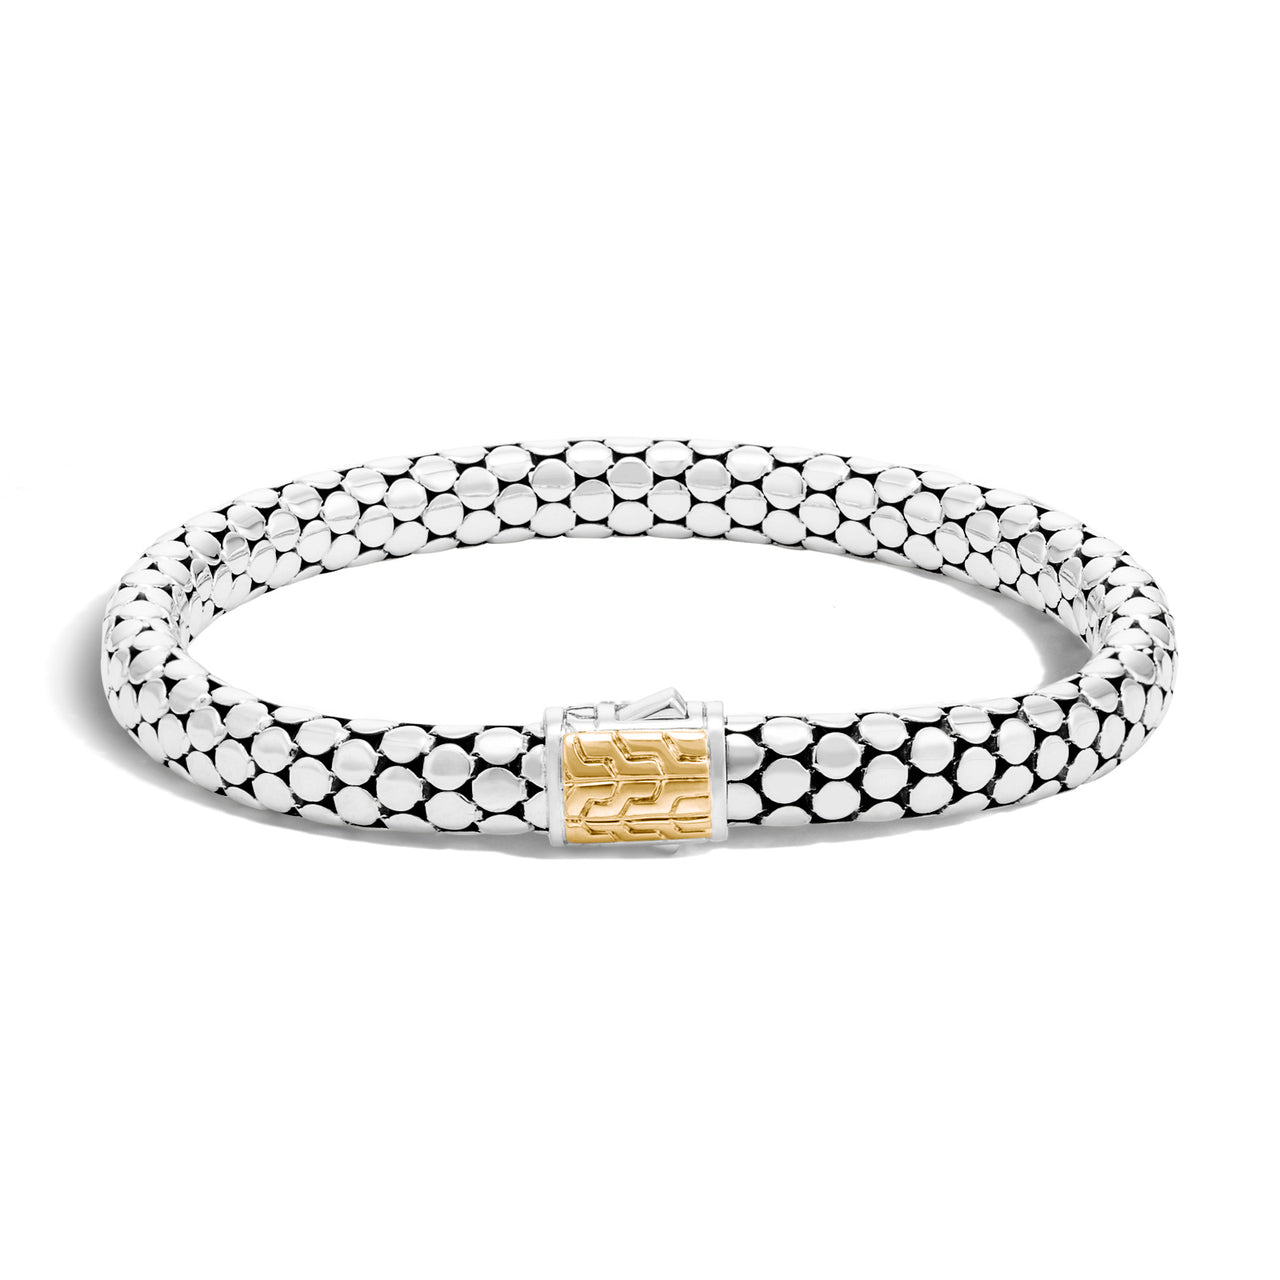 John Hardy Dot 18K Yellow Gold and Sterling Silver 6.5mm Bracelet